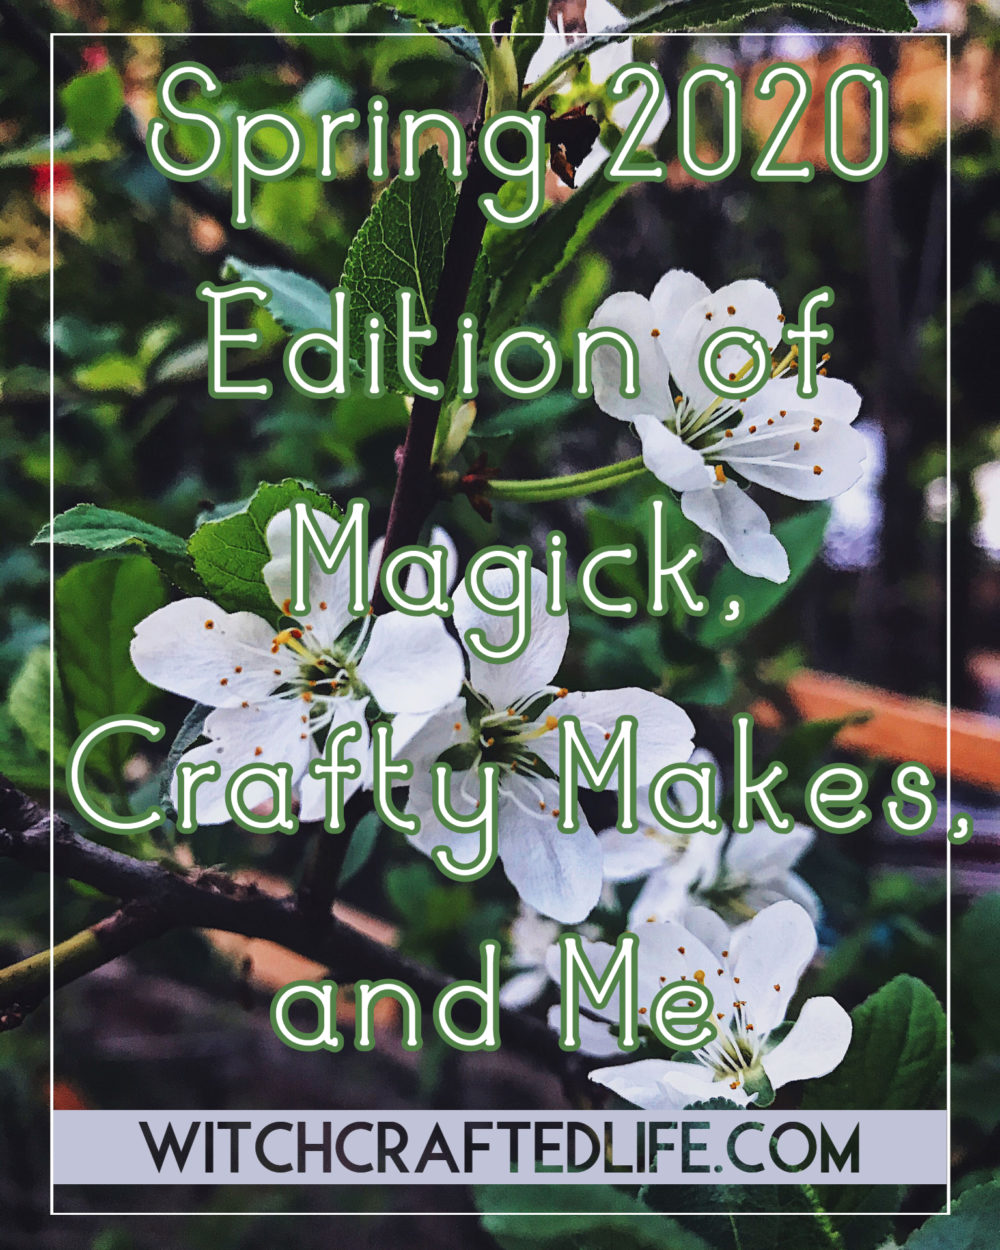 Spring 2020 Edition of Magick, Crafty Makes, and Me